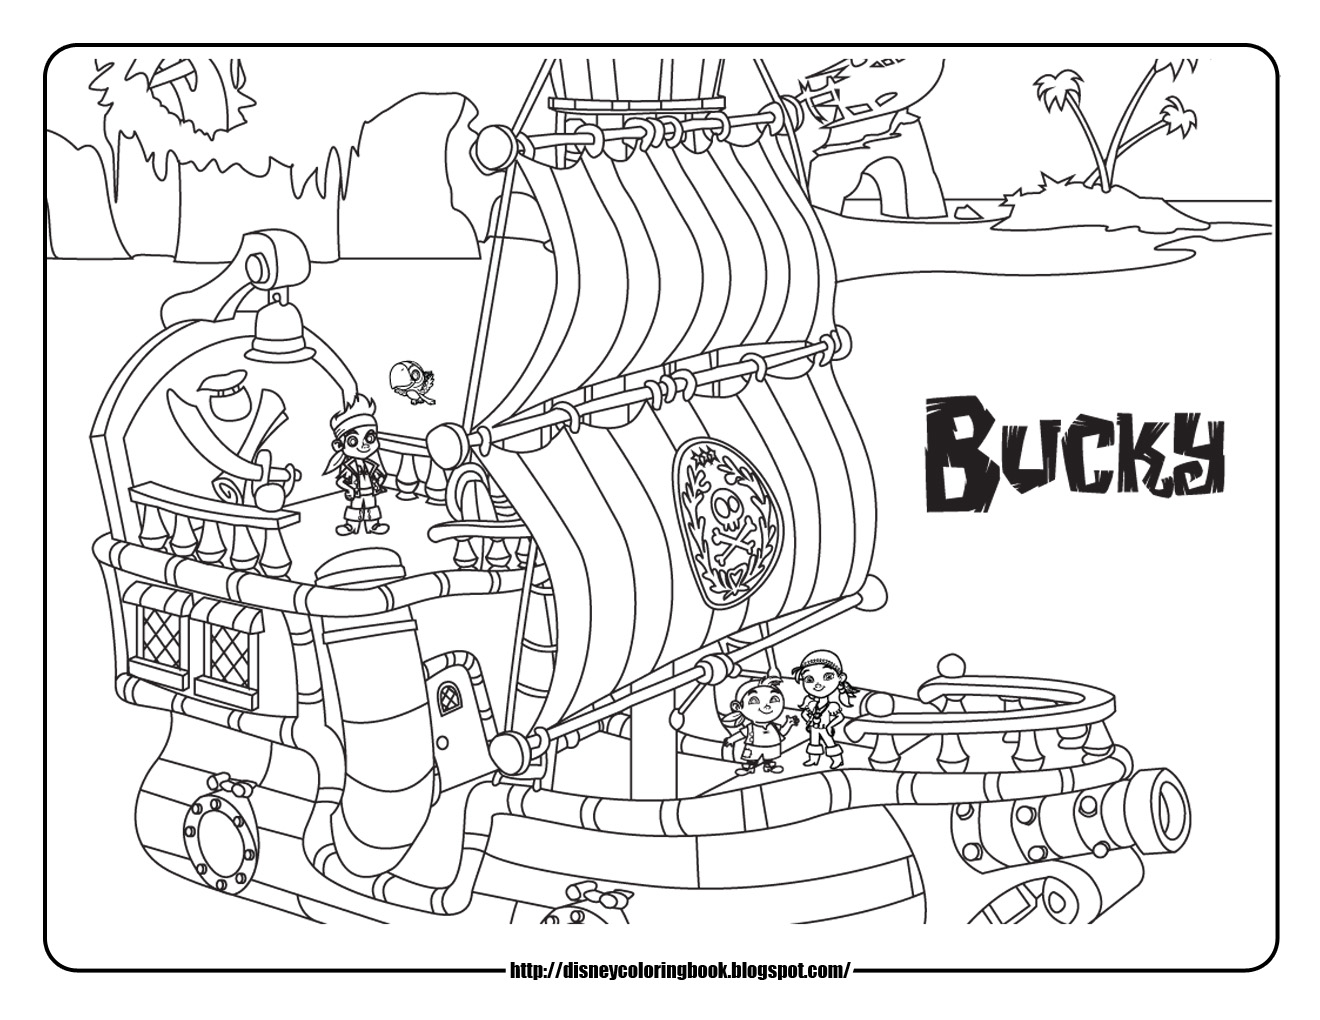 Disney lego coloring pages - Pirates Of The Caribbean Coloring Pages Printable S